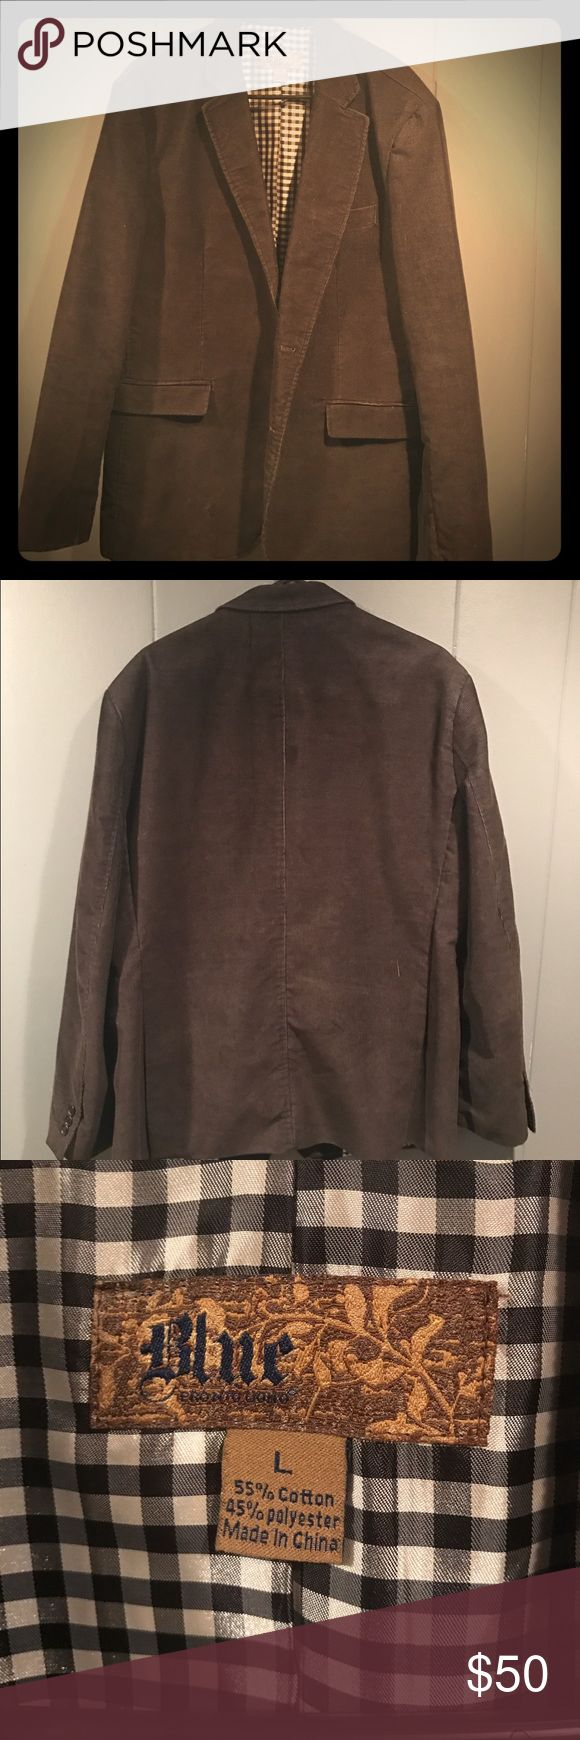 Men's sport jacket Corduroy men's sport jacket size large Jackets & Coats Lightweight & Shirt Jackets